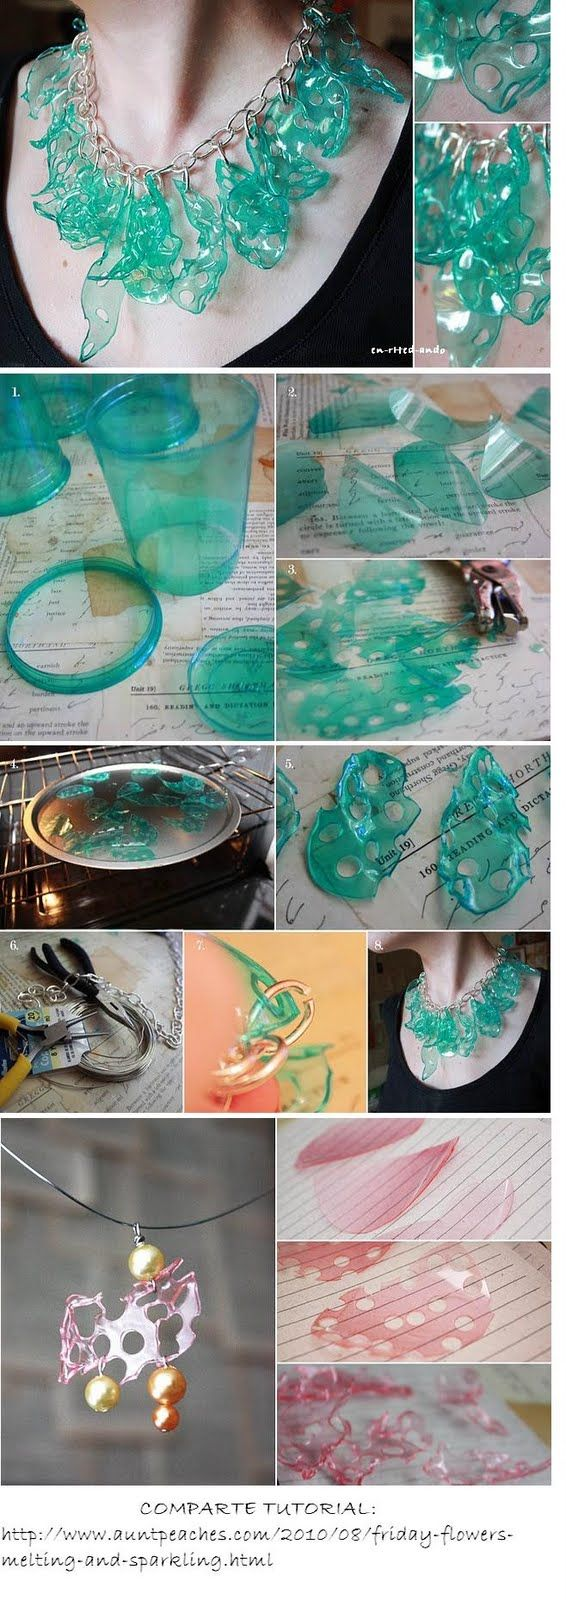 great project for teachers. Kids love to make something for their moms and grannies and this goes along beautifully with the recycling theme!